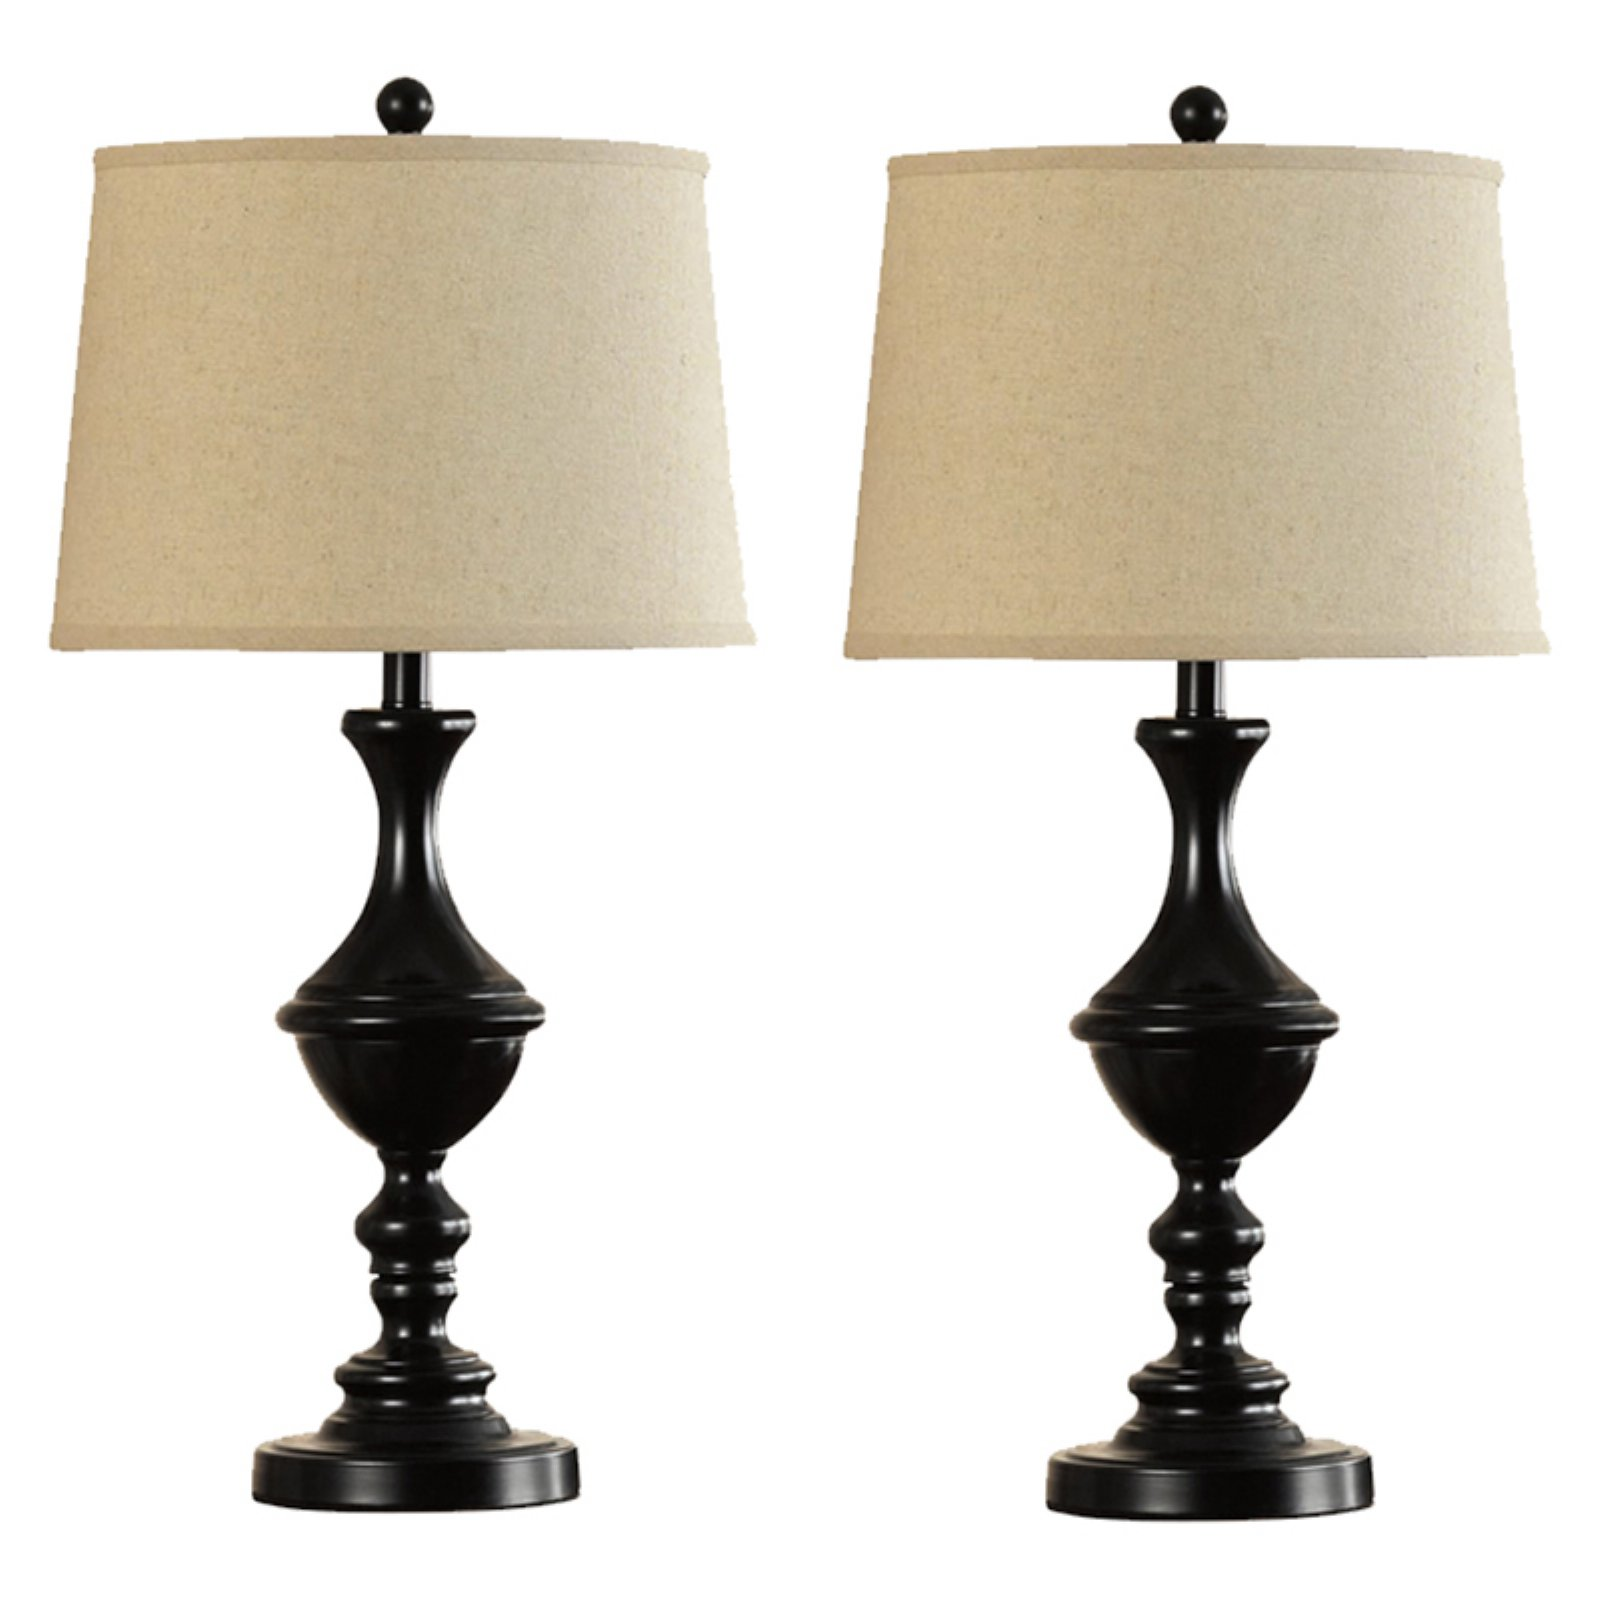 Catalina Lighting 28 Inch Oil Rubbed Bronze Metal Trophy Table Lamps   Set  Of 2